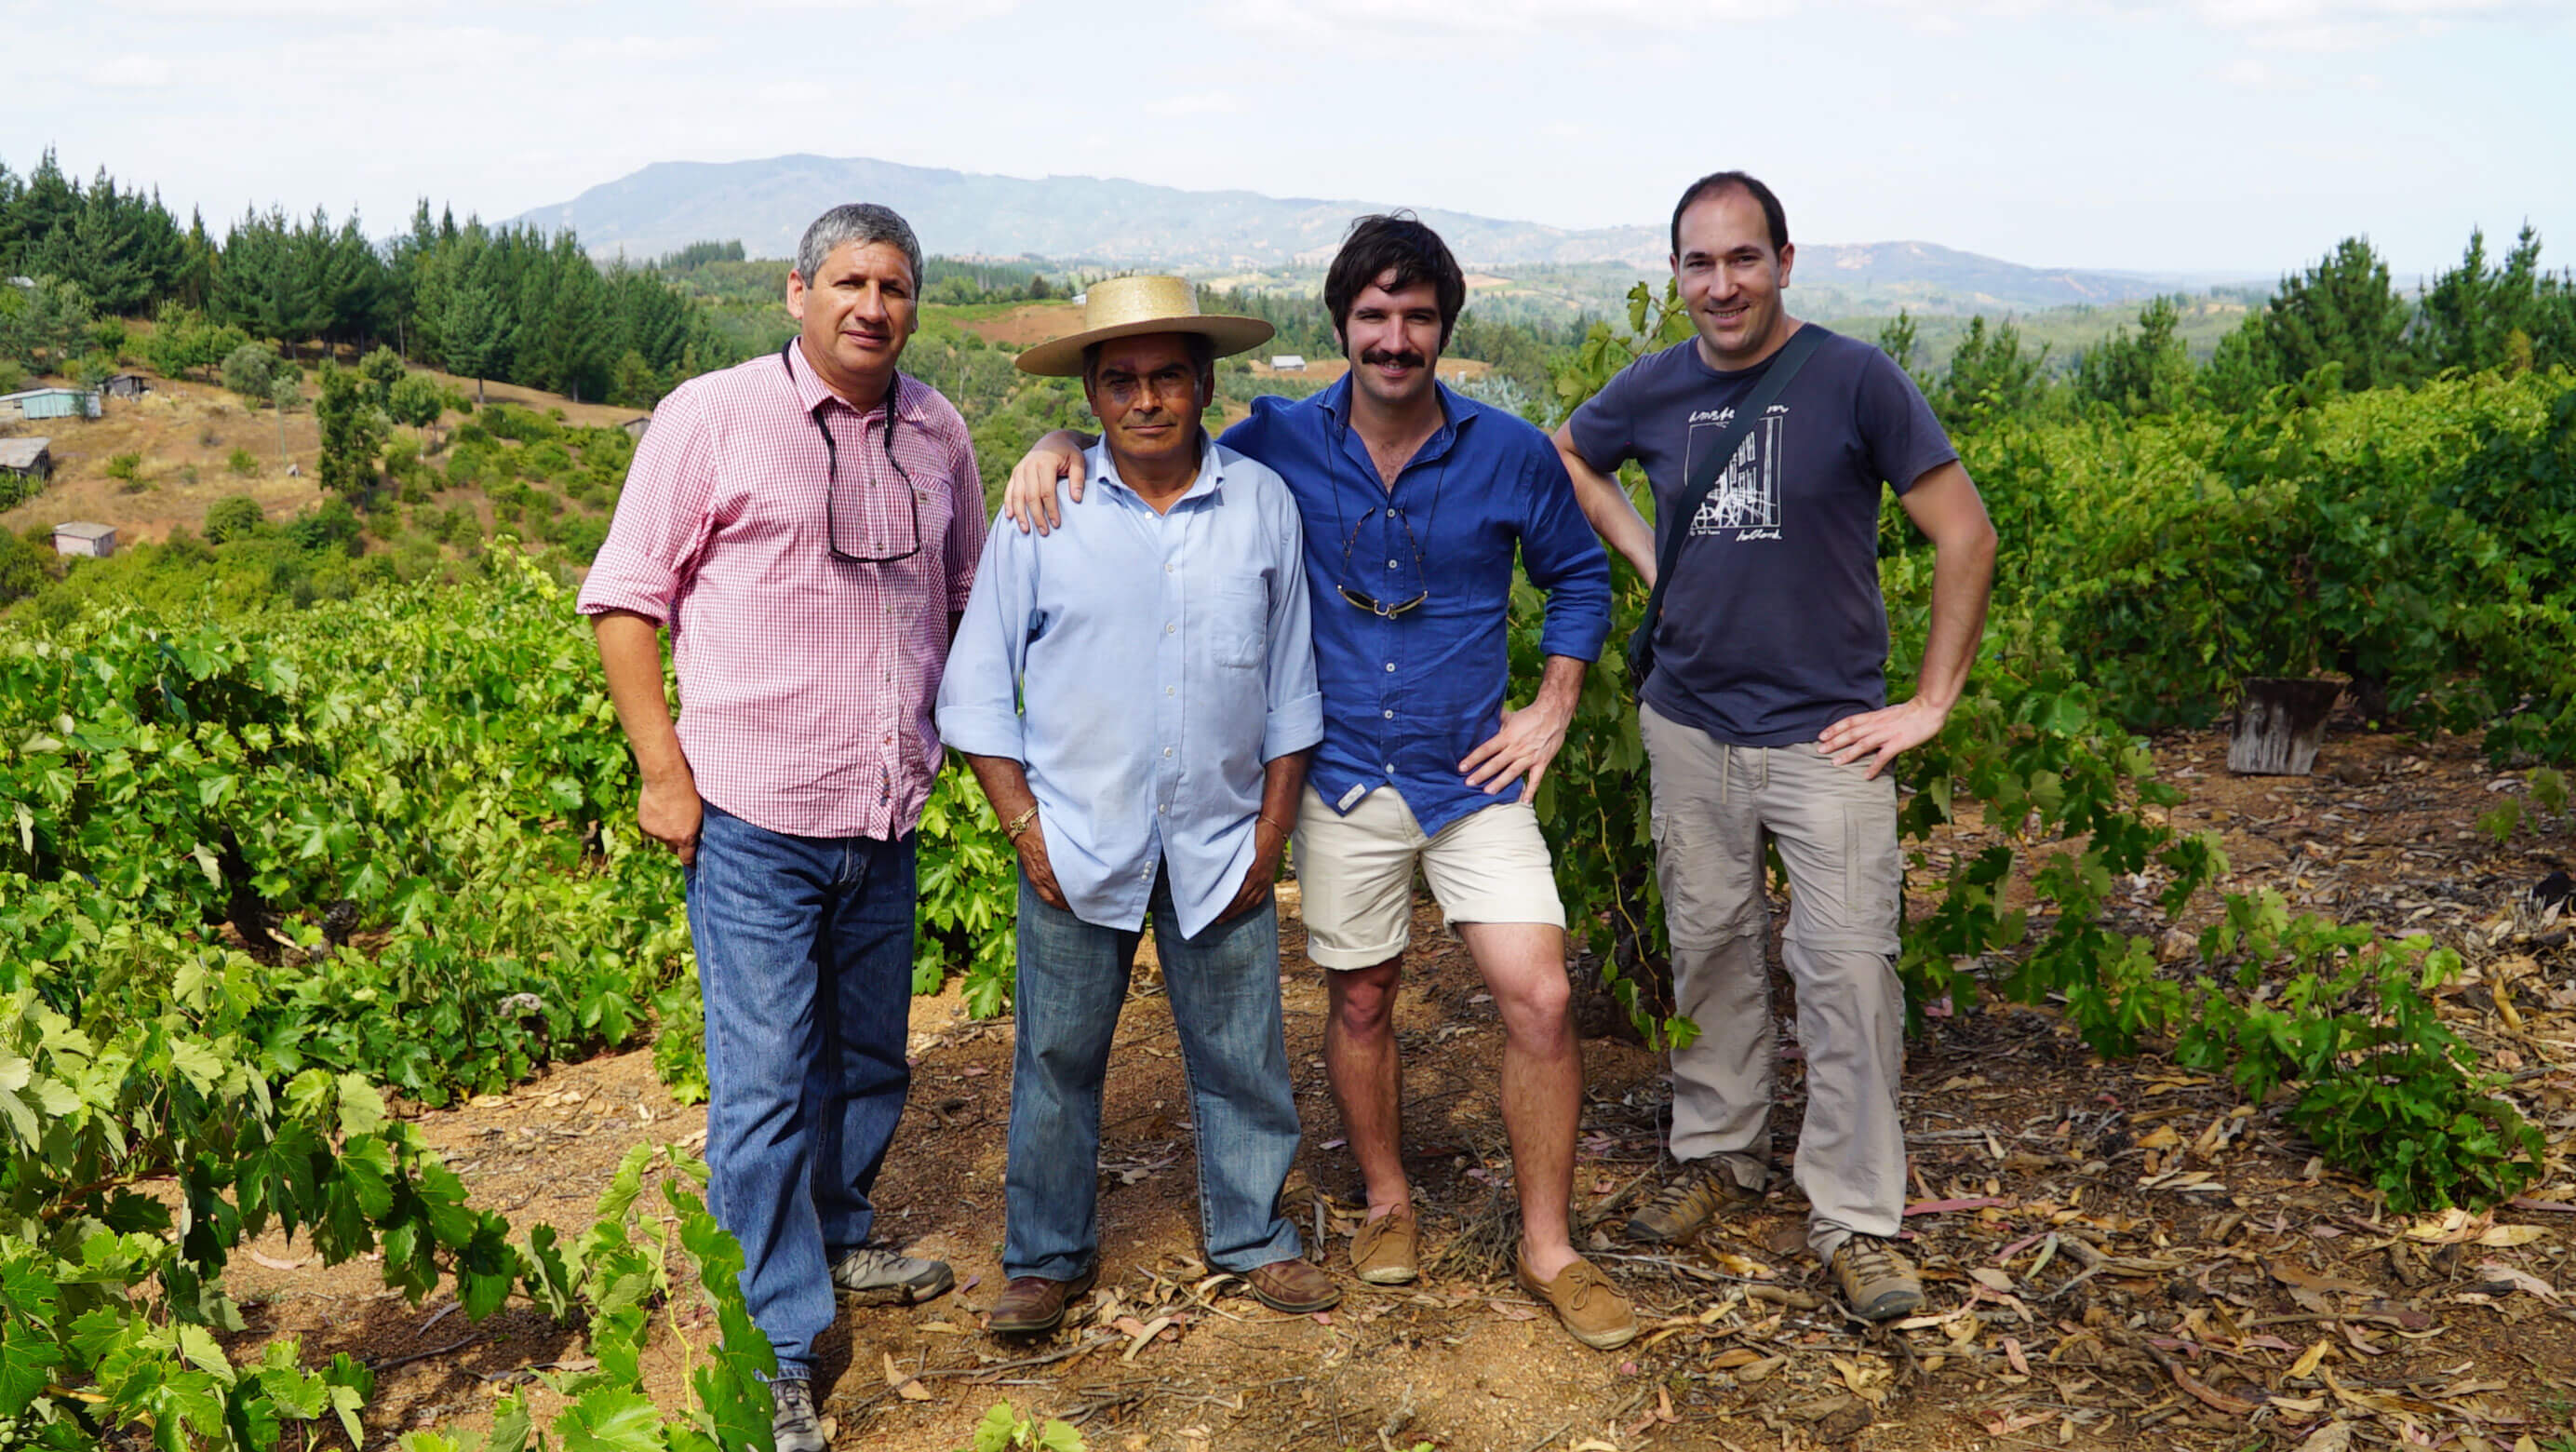 equipo agricultores vintae